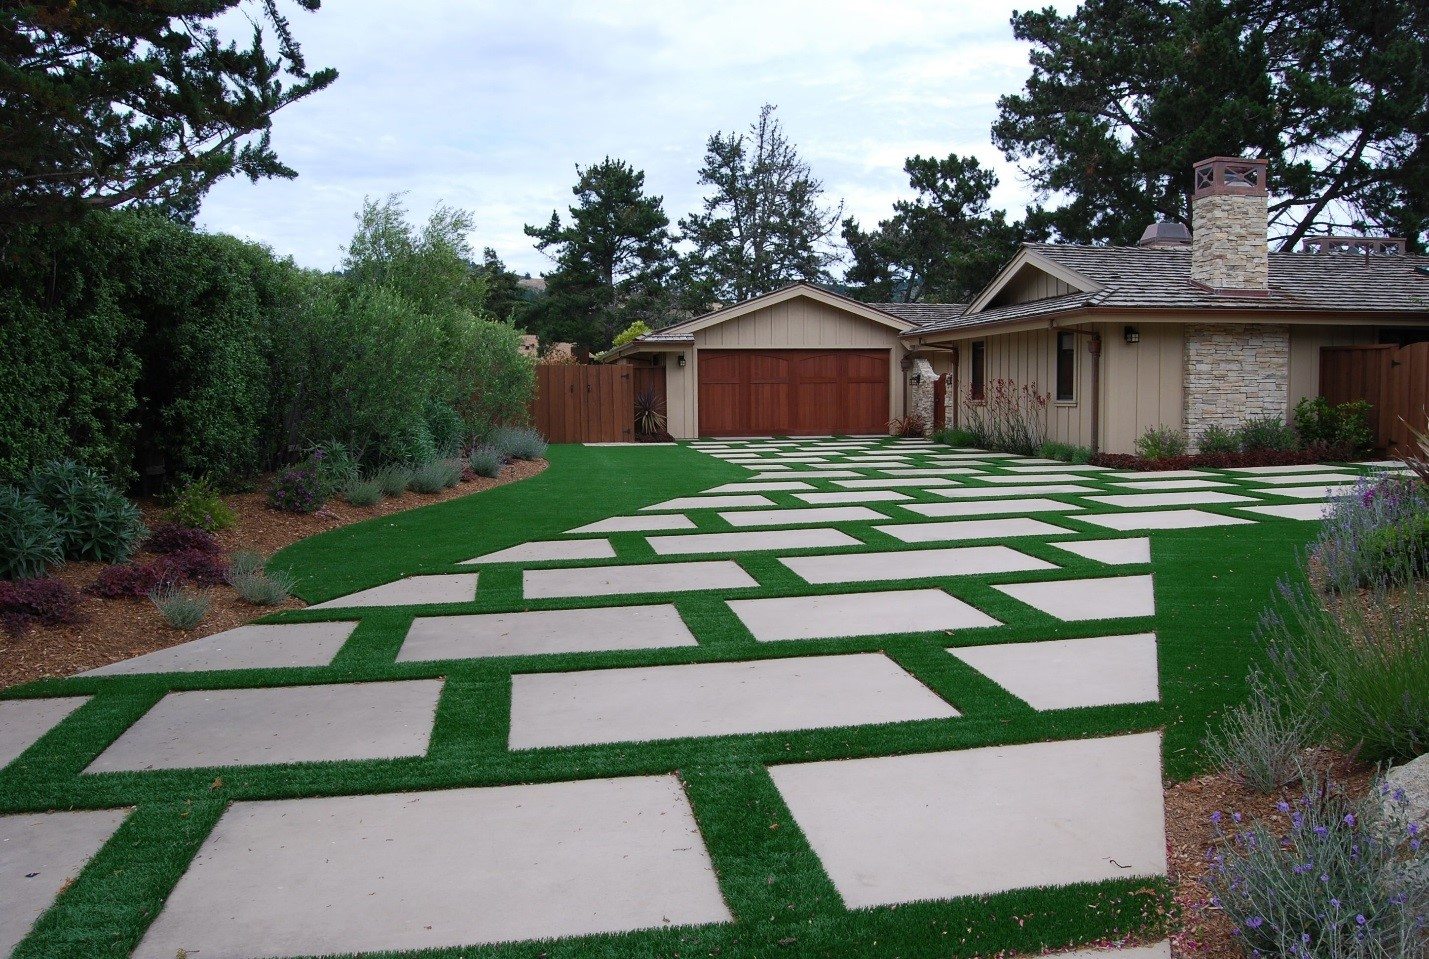 Get More Creative with Your Artificial Turf at Home ... on Artificial Turf Backyard Ideas id=41417